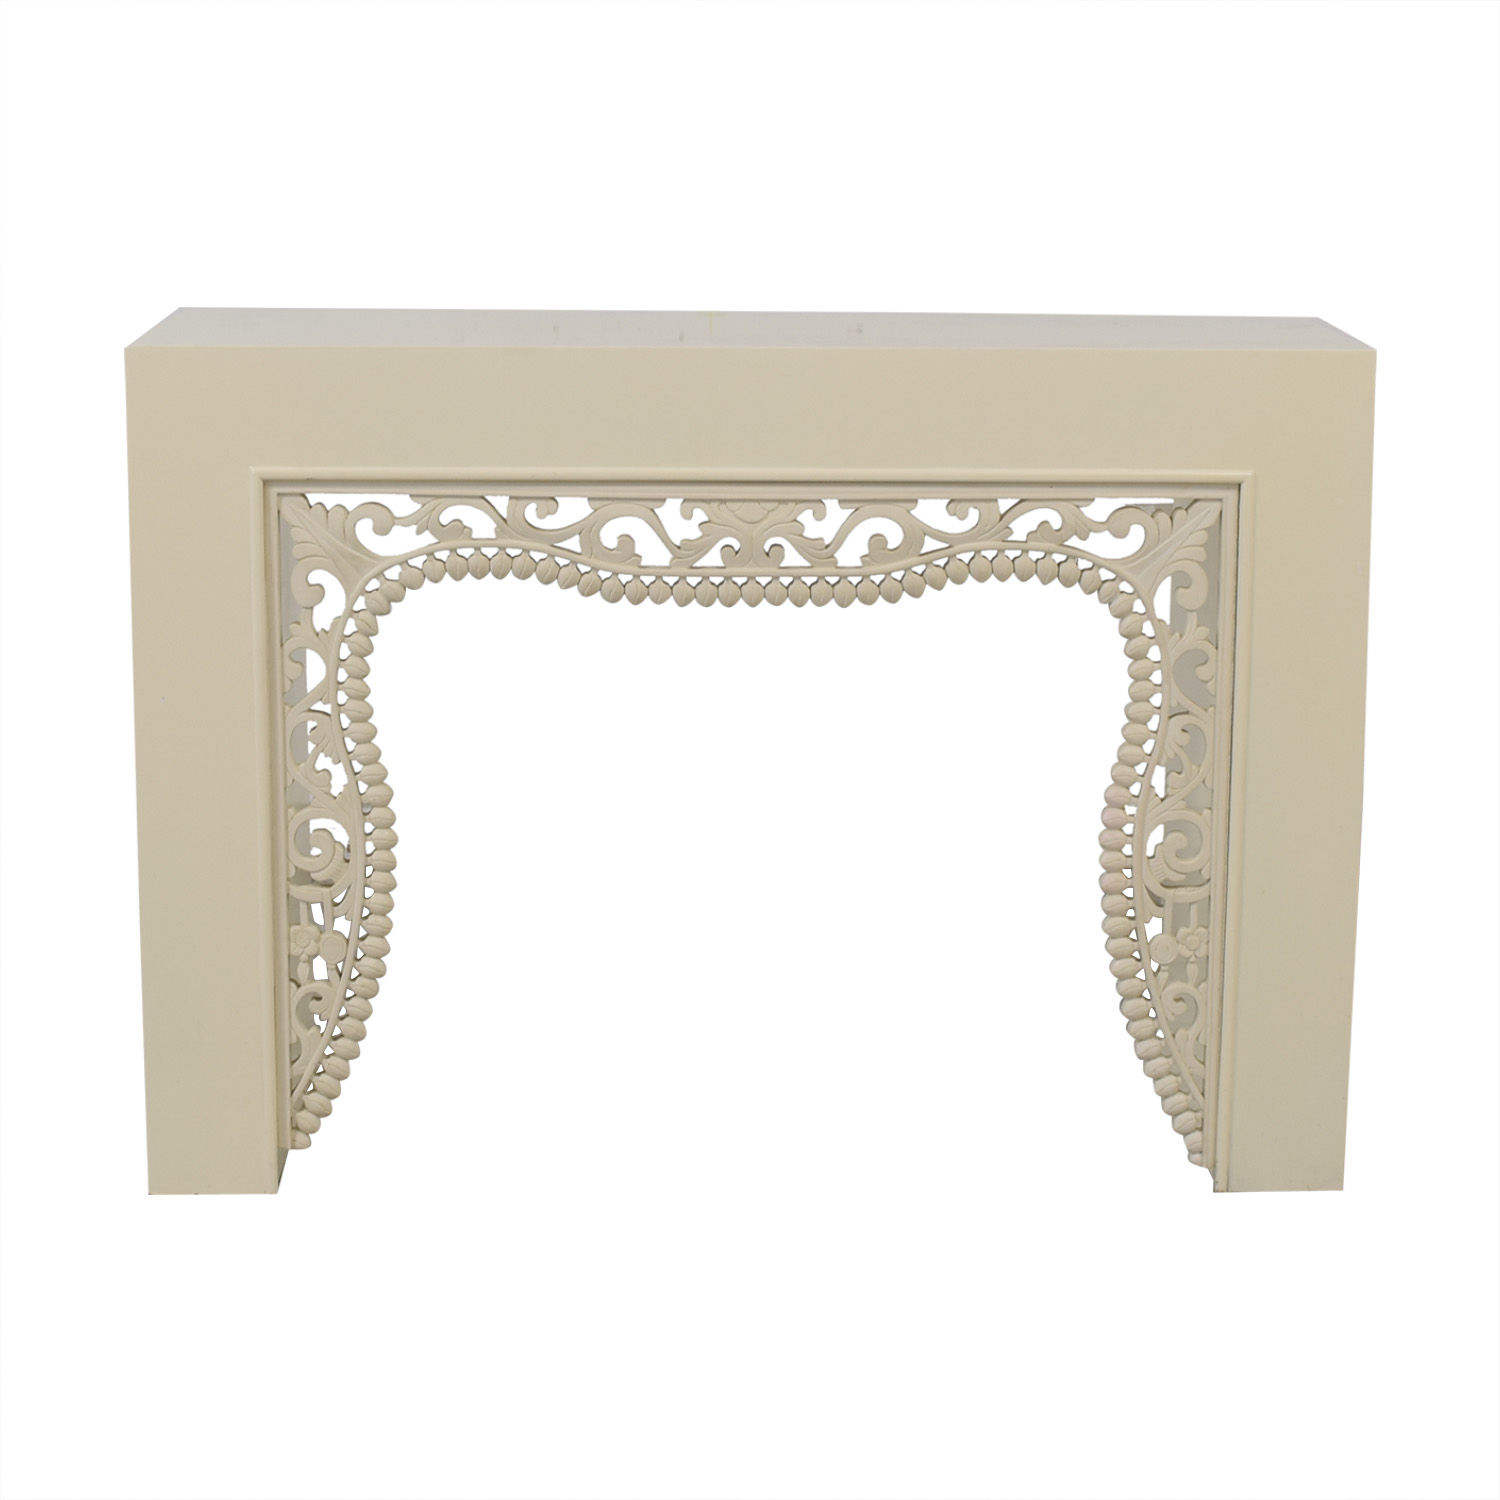 shop Shangai White Lacquer Console Shine by S.H.O